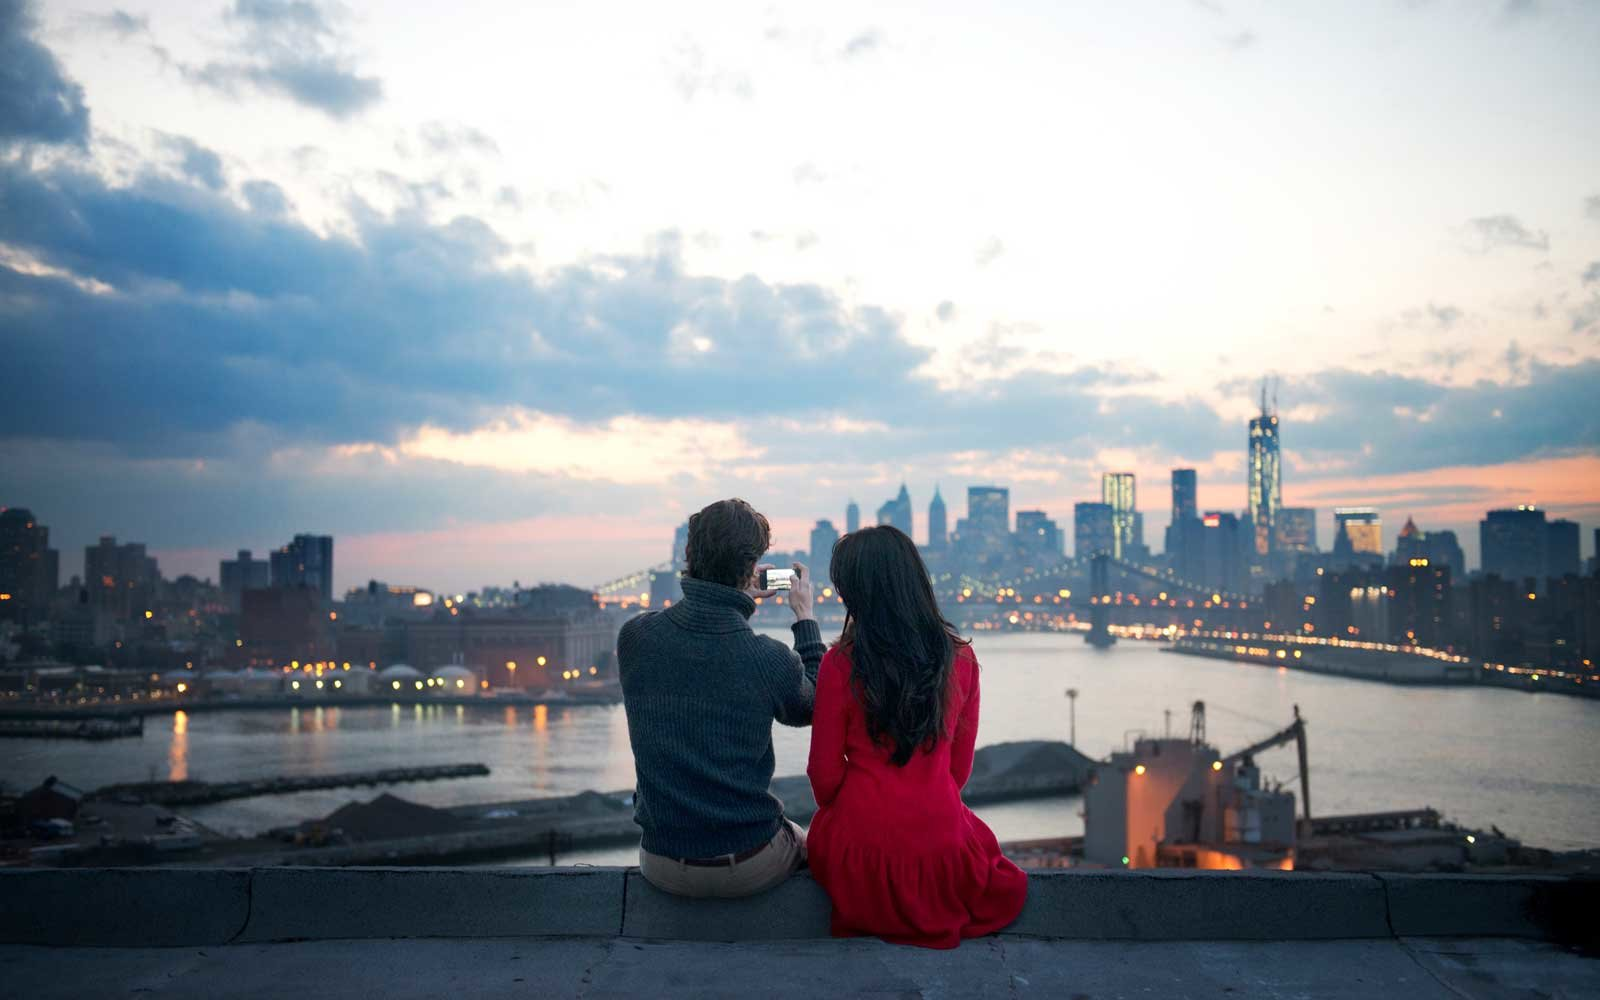 Kayak's new Rendezvous tool makes it easier for long-distance couples to travel together.